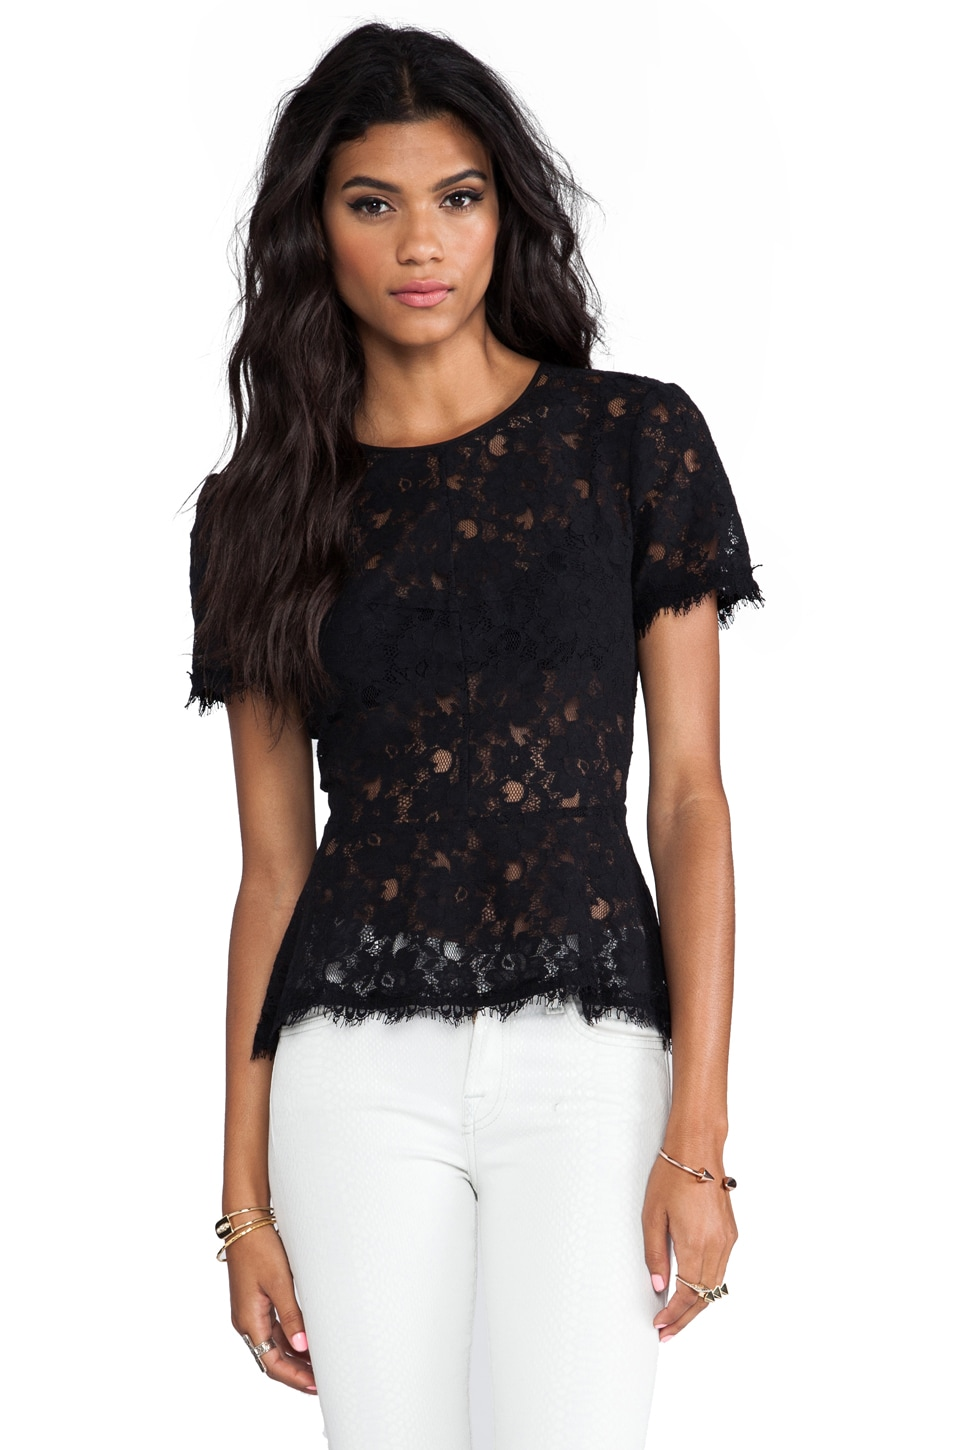 BCBGMAXAZRIA Evia Lace Top in Black